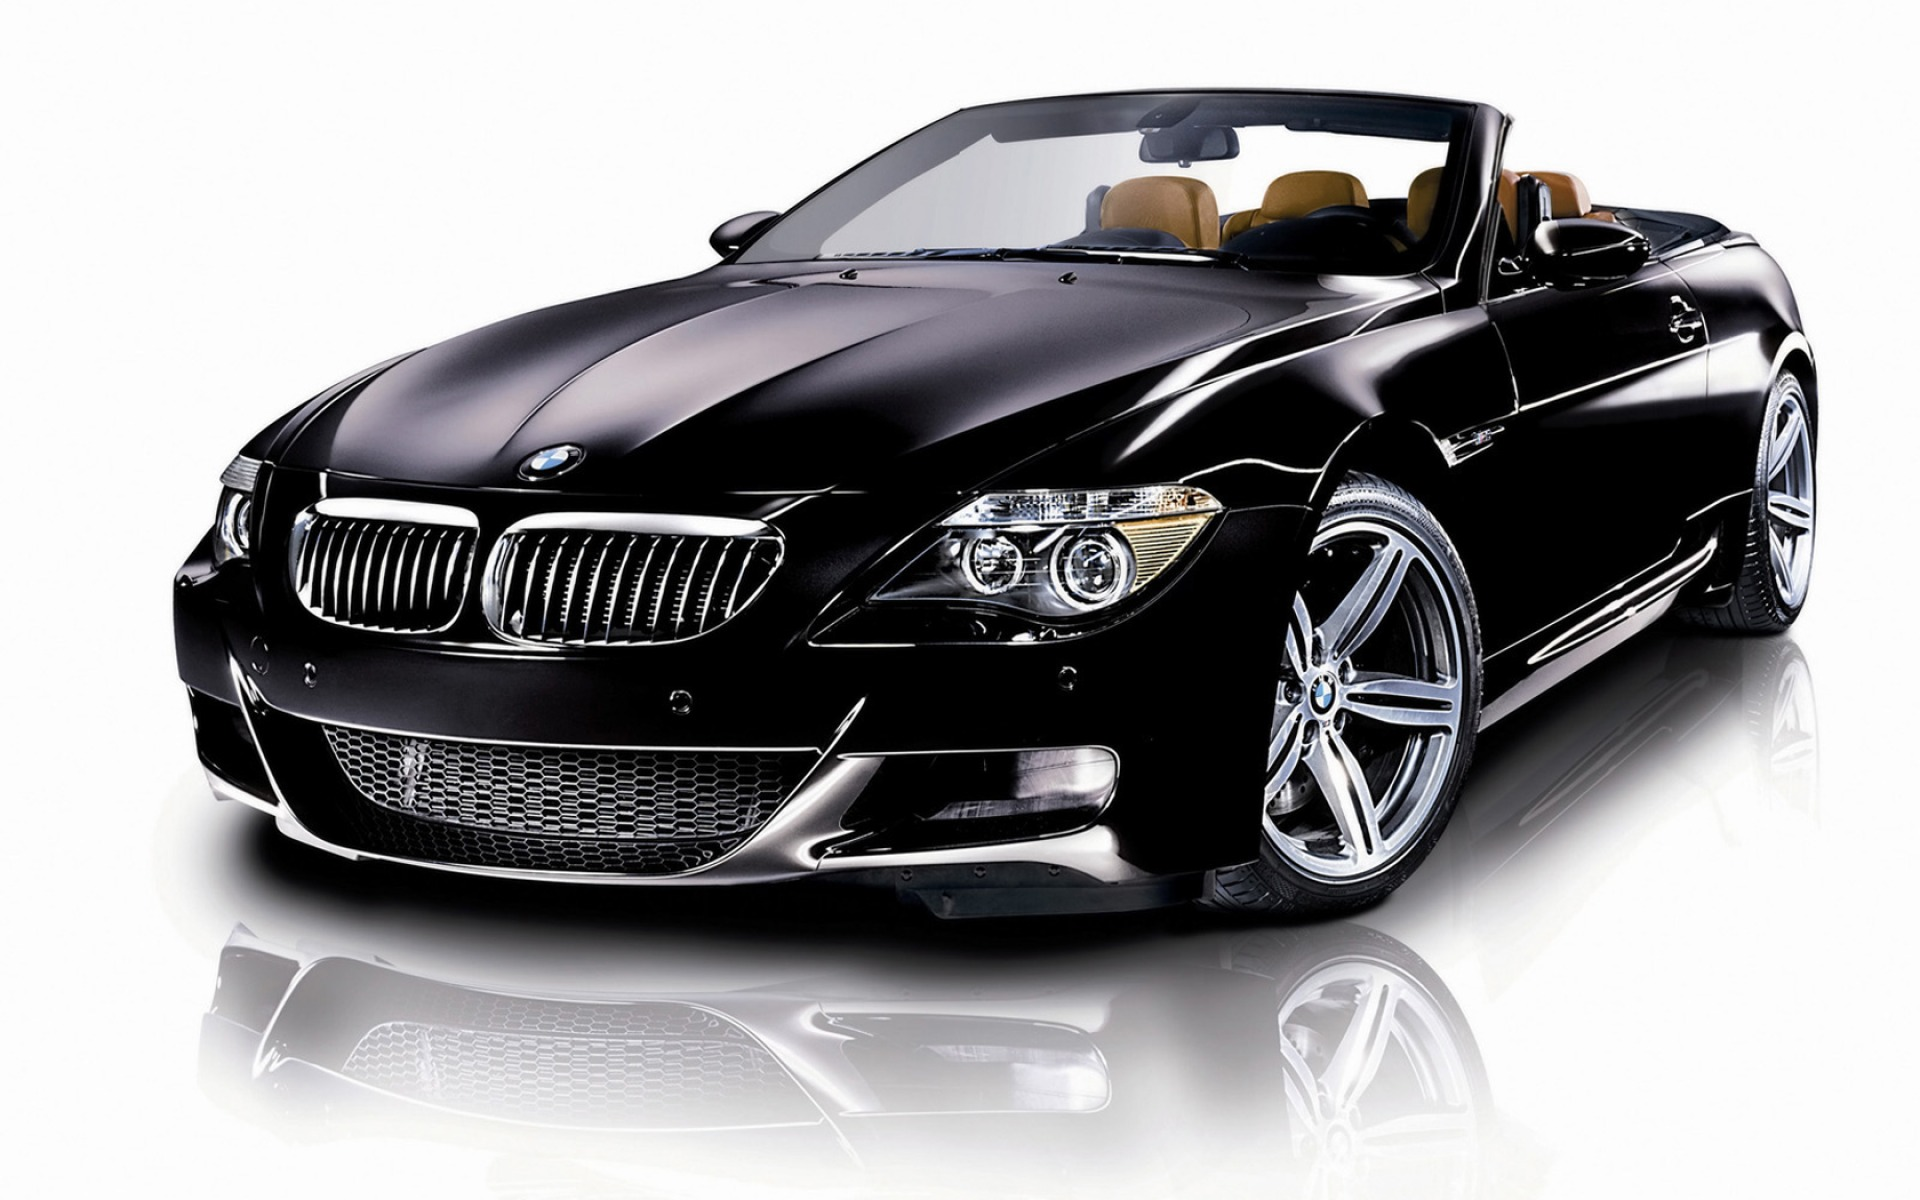 Ultrablogus  Surprising Bmw Car Wallpaper Wallpapers For Free Download About   With Fascinating Bmw M Convertible Wallpaper Bmw Cars With Beauteous Porsche  Interior Kits Also Kc  Interior In Addition Houndstooth Interior Camaro And Automotive Interior Fabric As Well As Mi  Interior Additionally Custom Mercedes Interior From Allfreedownloadcom With Ultrablogus  Fascinating Bmw Car Wallpaper Wallpapers For Free Download About   With Beauteous Bmw M Convertible Wallpaper Bmw Cars And Surprising Porsche  Interior Kits Also Kc  Interior In Addition Houndstooth Interior Camaro From Allfreedownloadcom